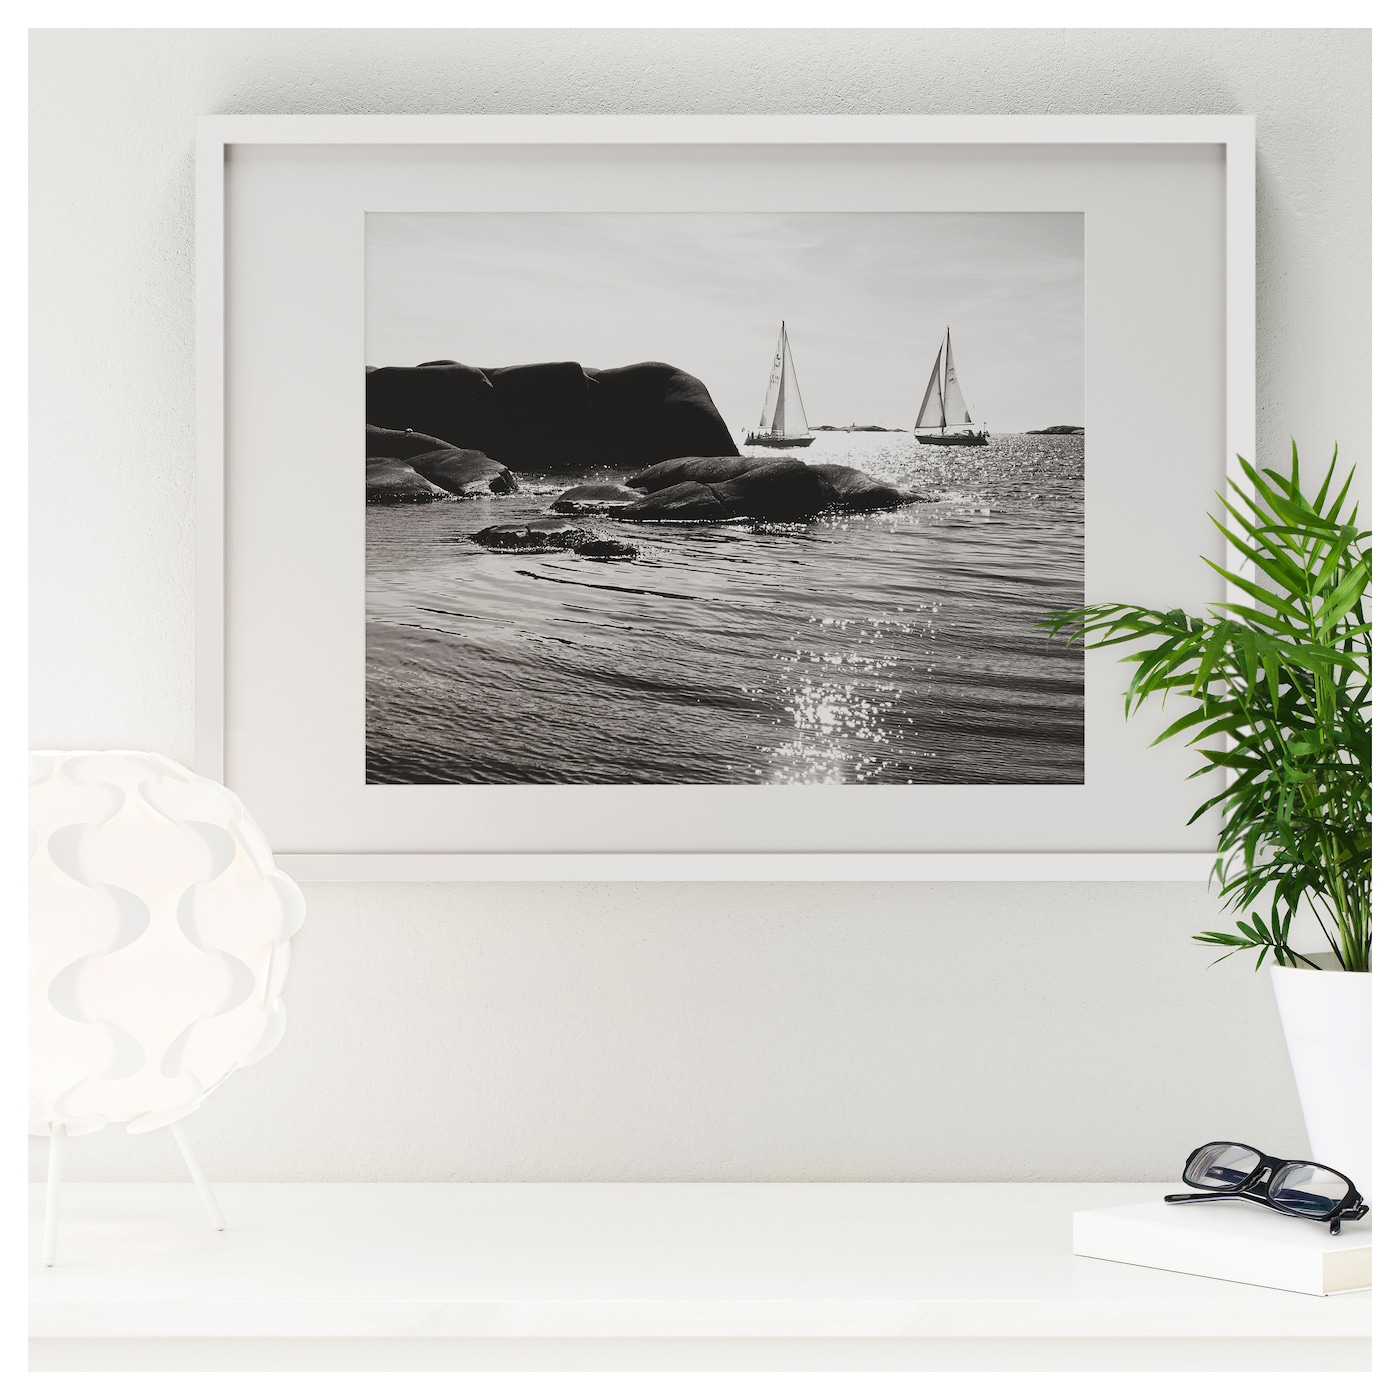 IKEA RIBBA frame The mount enhances the picture and makes framing easy.